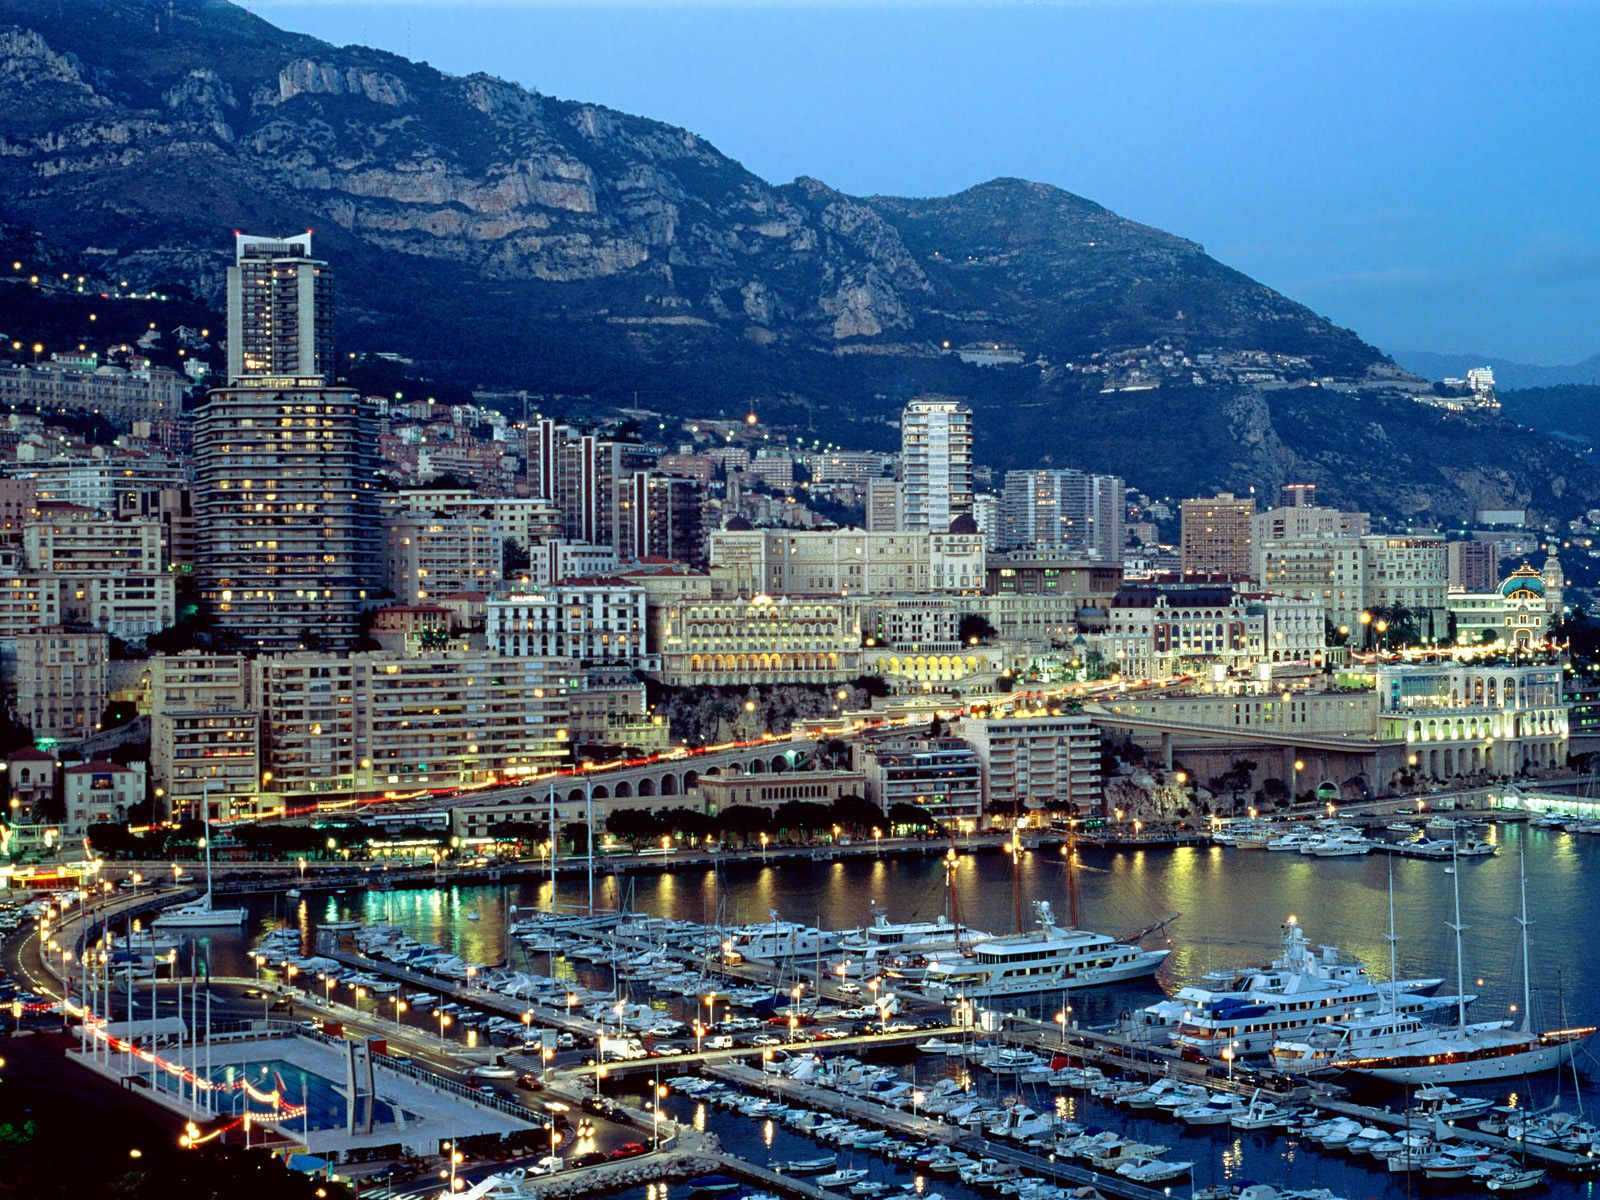 The Treasures of Monte Carlo are many ... photo by http://miriadna.com/